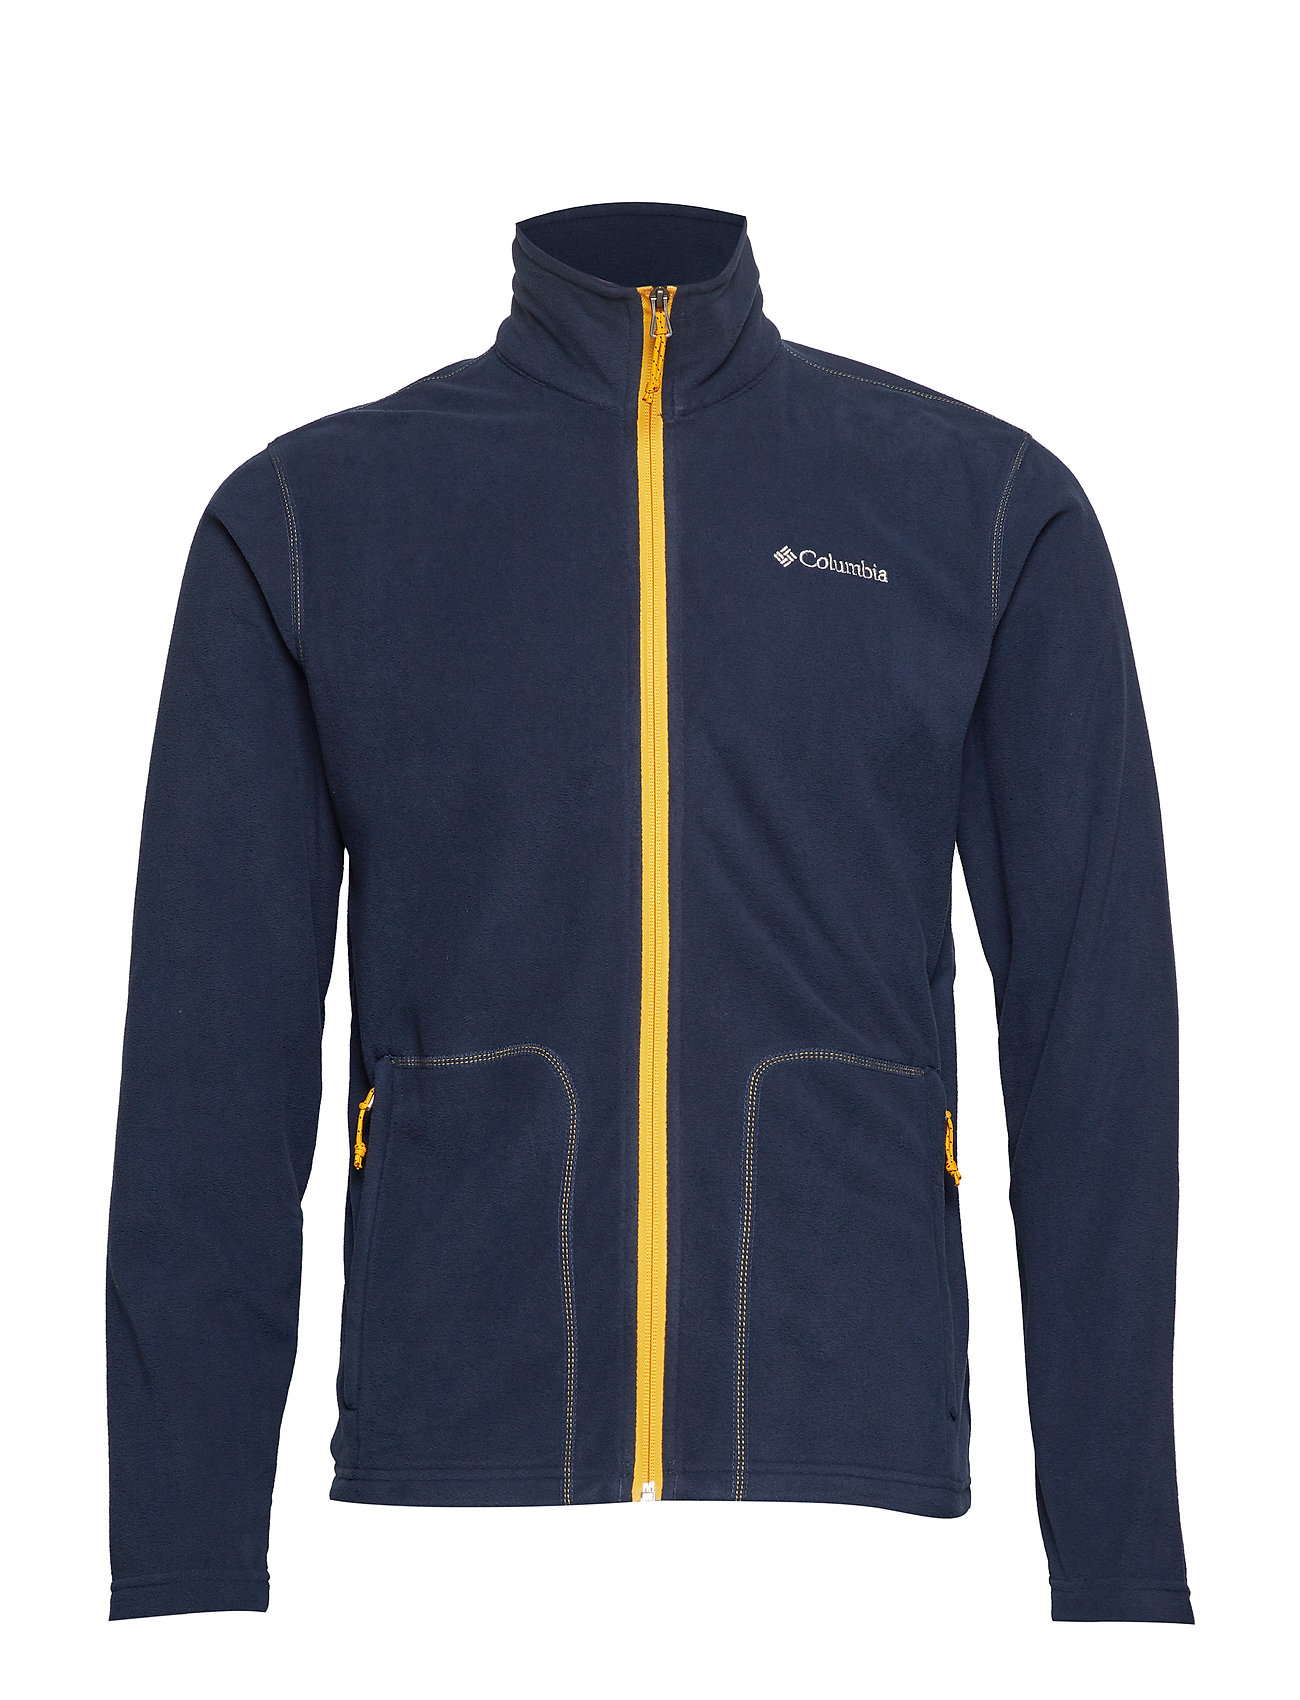 Full light Fast Zip NavyColumbia Fleececollegiate Trek� lKTJ3Fc1